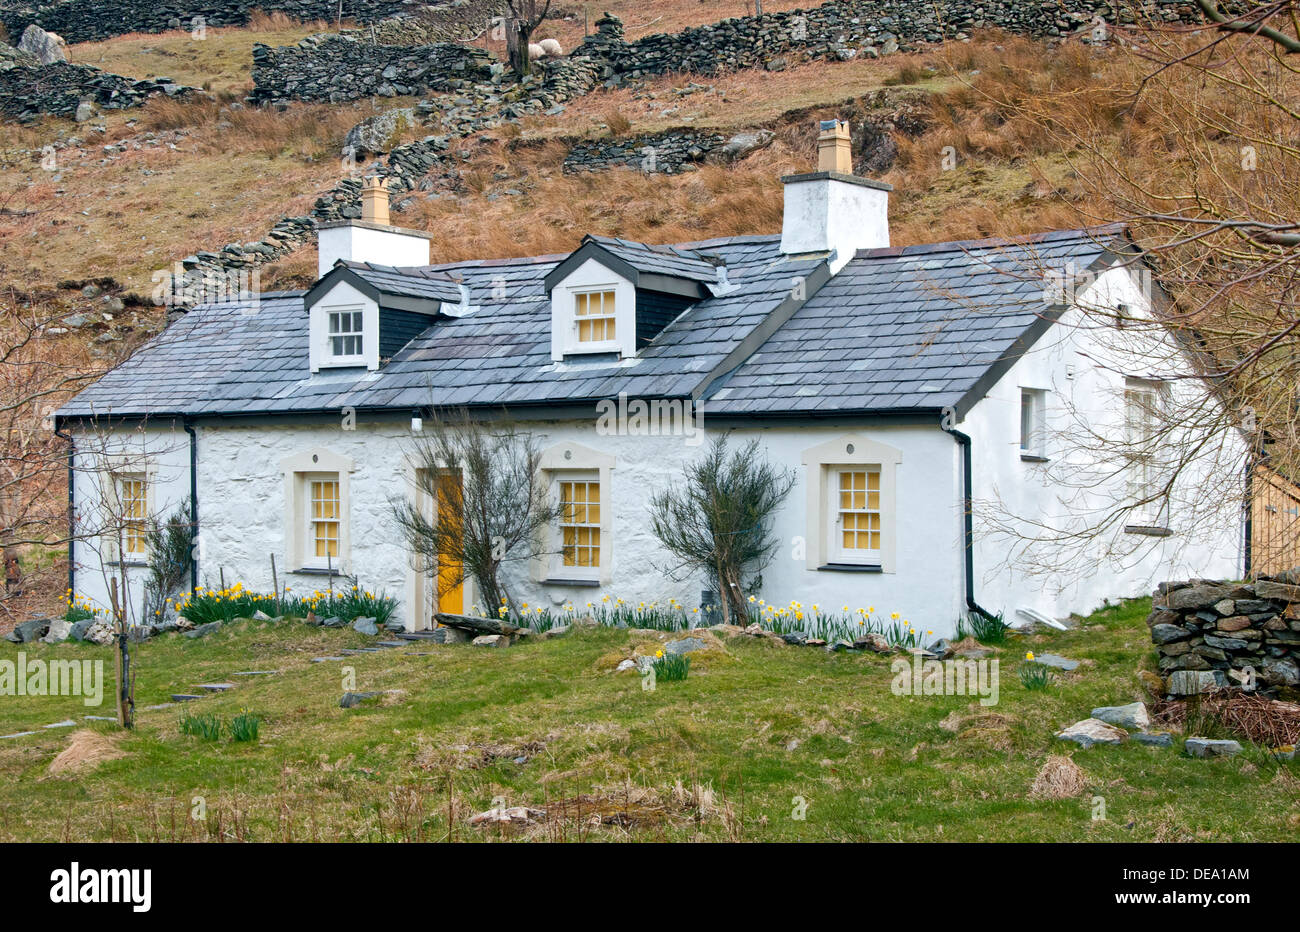 Traditional Whitewashed Welsh Cottage in Spring, Nant Peris, Llanberis Pass , Snowdonia National Park, North Wales, UK - Stock Image